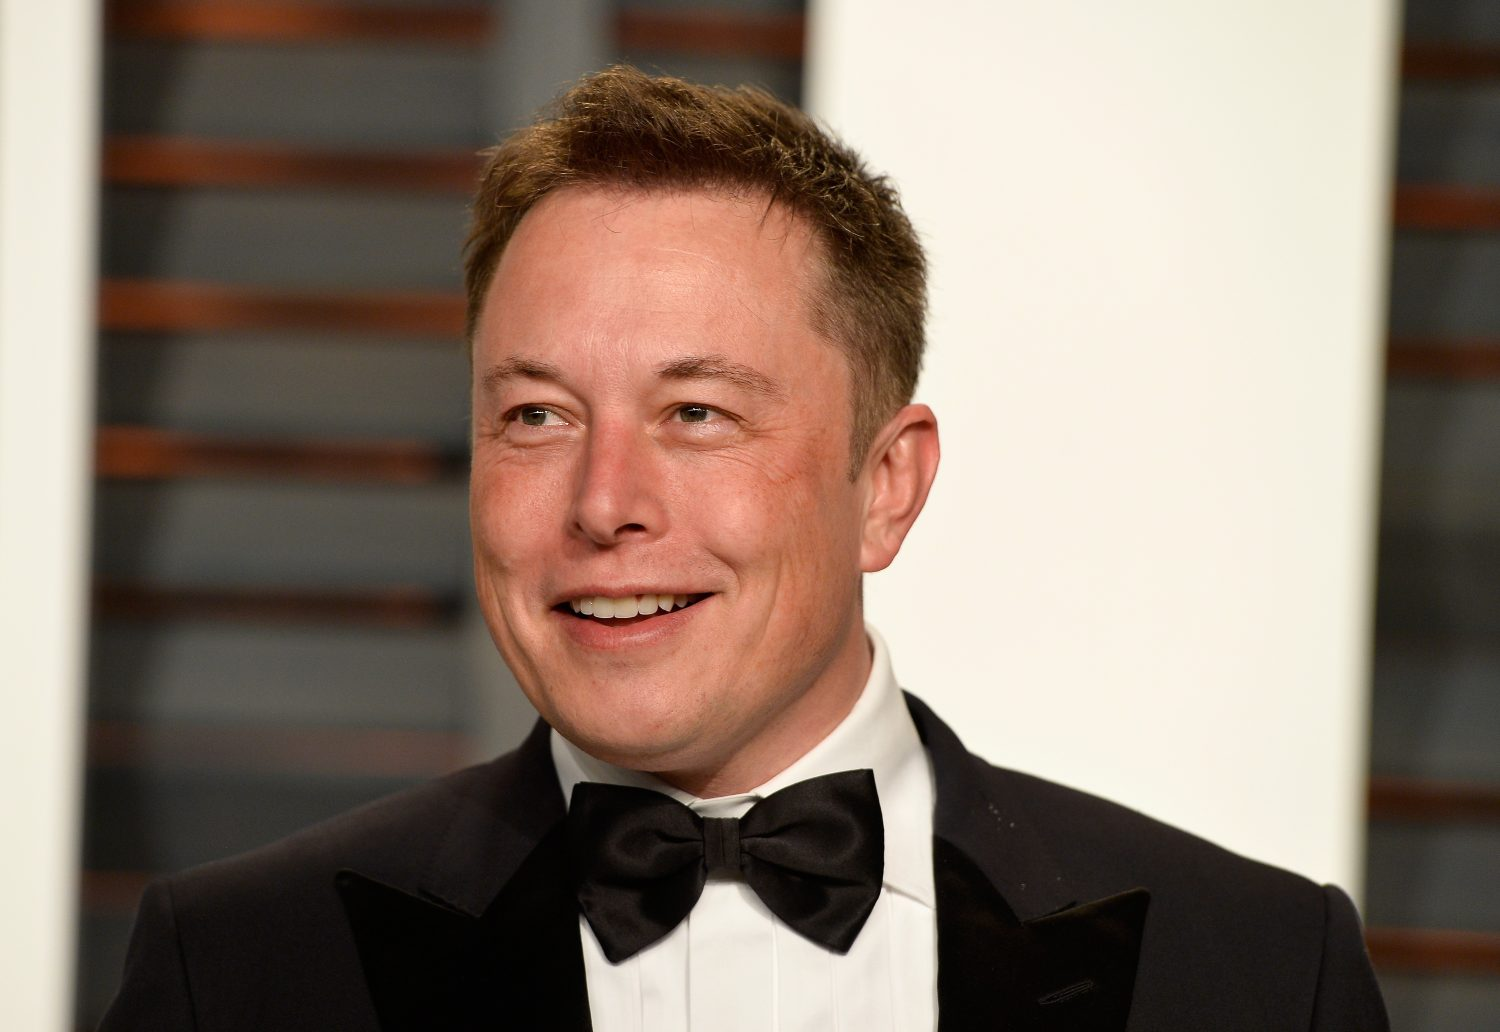 elon musk overtakes bill gates to become the second-richest person in the world after his net worth rose by $100billion in a year – a five-fold increase to a total $127.9bn – after tesla shares prices soared 500%